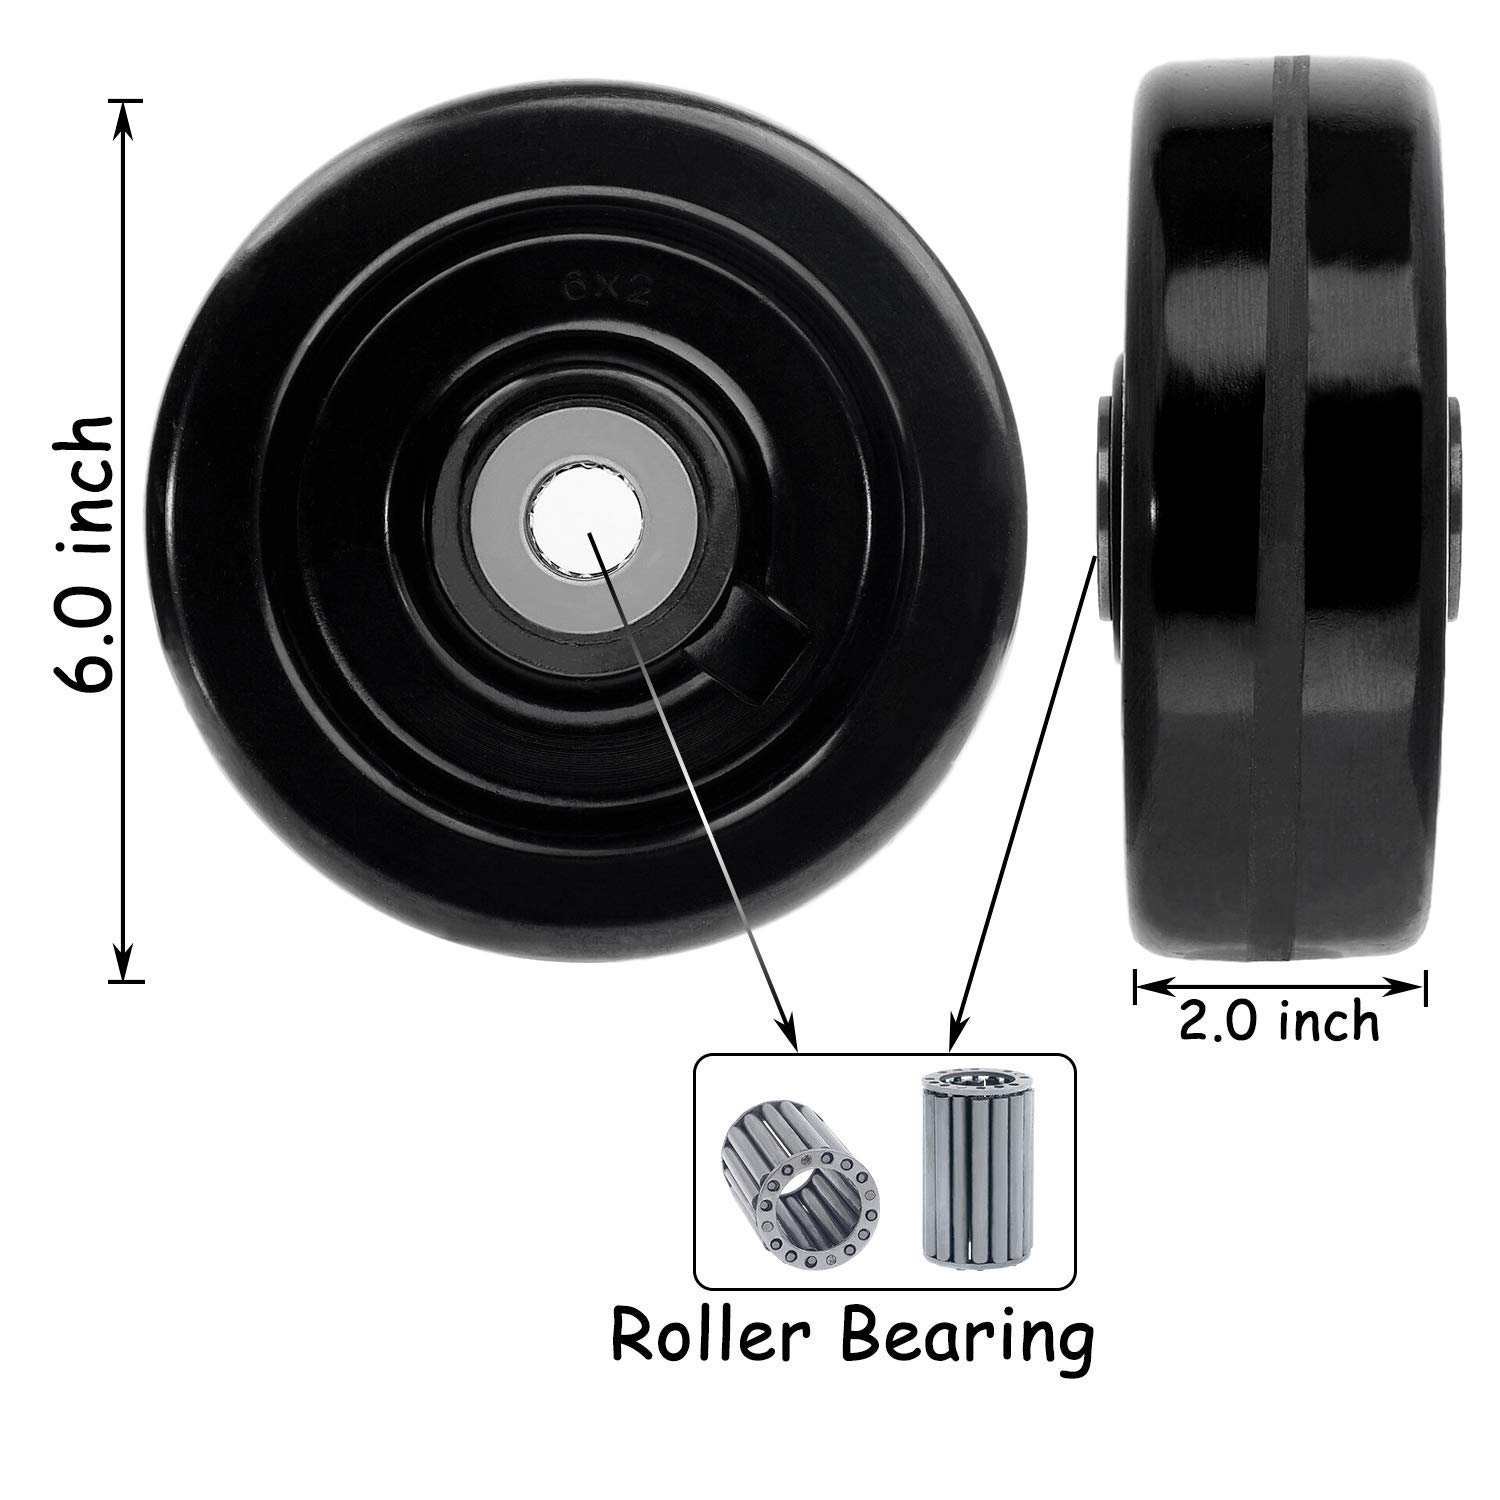 SY America 4x2 Width 4 Pack Phenolic Wheel w//Rolling Bearing /& Steel Bushing 1//2 Axle Diameter Casters Total Capacity 3600 lbs 4 inches Pack of 4